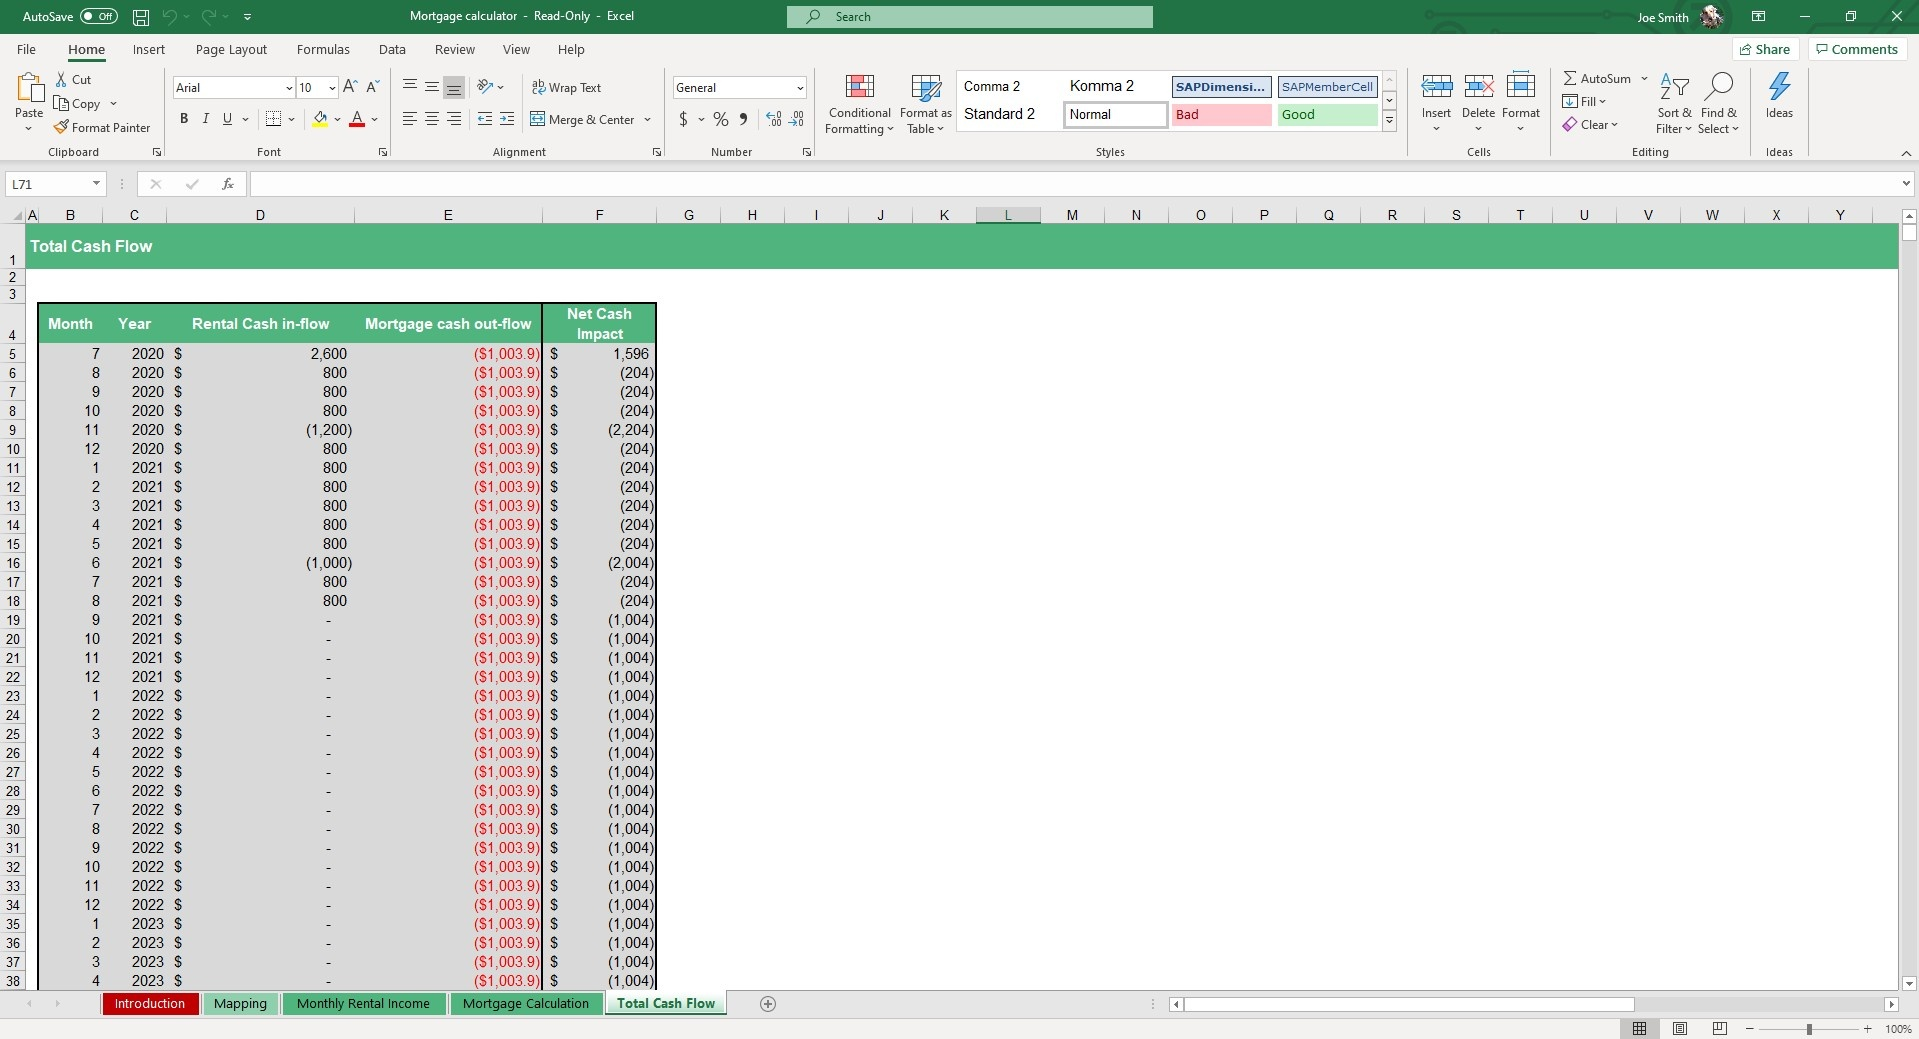 View your Total Cash Flow by month in this sheet